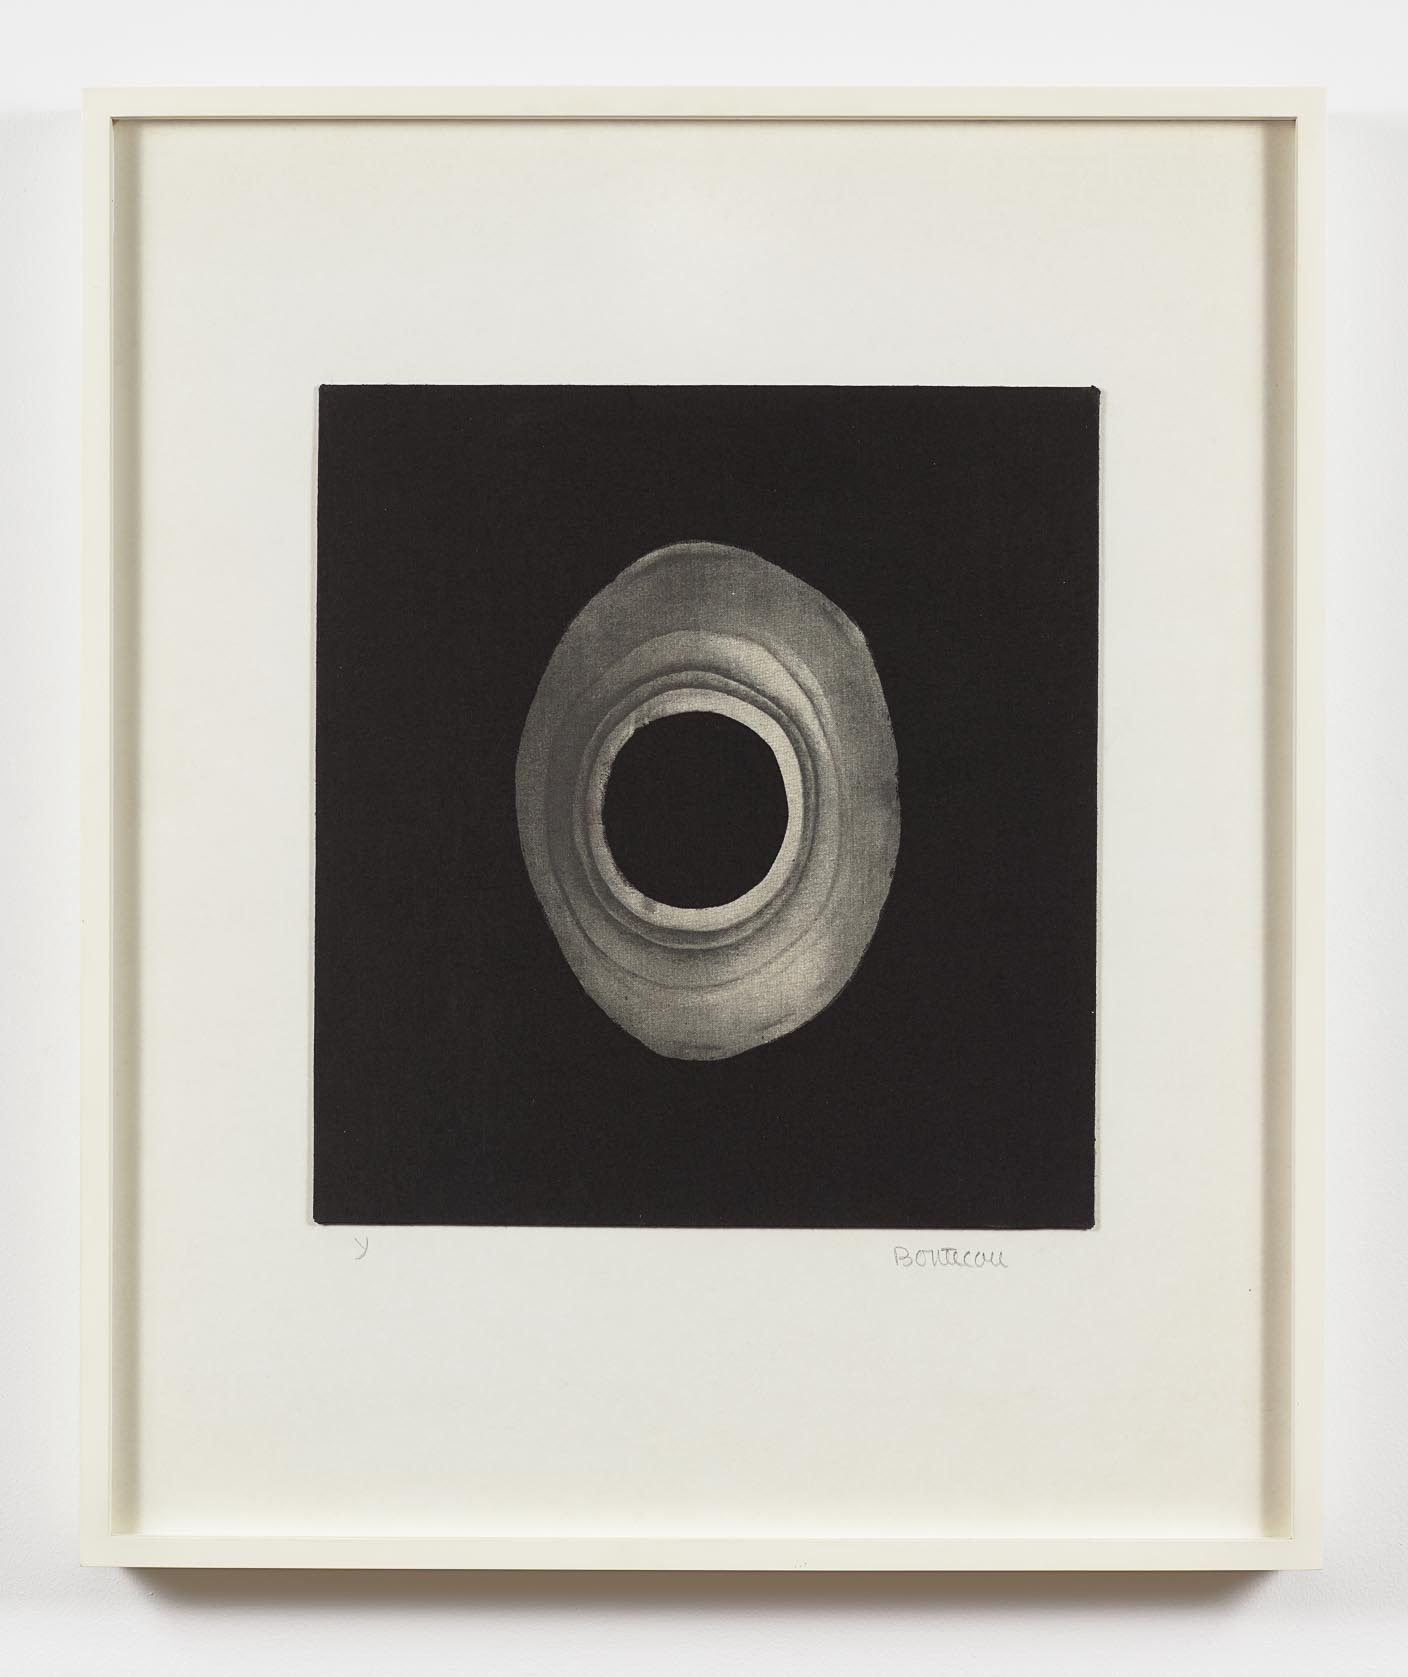 """Lee Bontecou  (b. 1931)  Untitled , 1968 Silk screen on fabric 14 x 13 inches  Part of the portfolio """"Ten from Leo Castelli,"""" which included works by Bontecou, Johns, Lichtenstein, Poons, Stella, and Warhol, among others."""